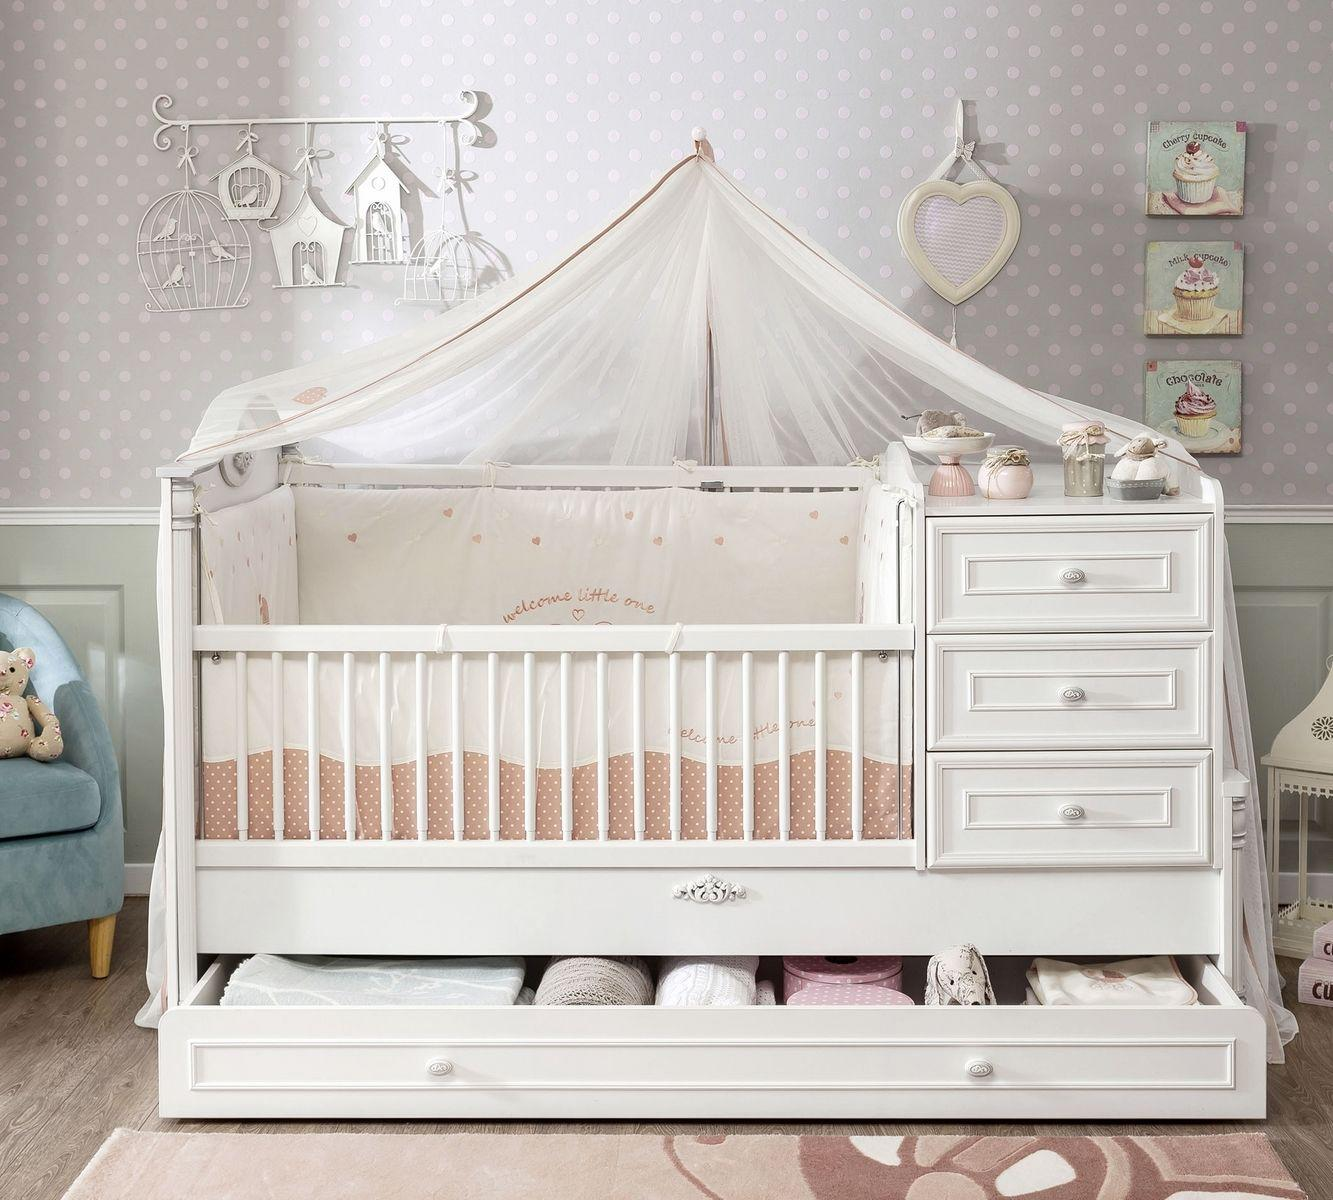 babybett gitterbett mitwachsende bett dreams in weiss seidenmatt kaufen bei sylwia. Black Bedroom Furniture Sets. Home Design Ideas